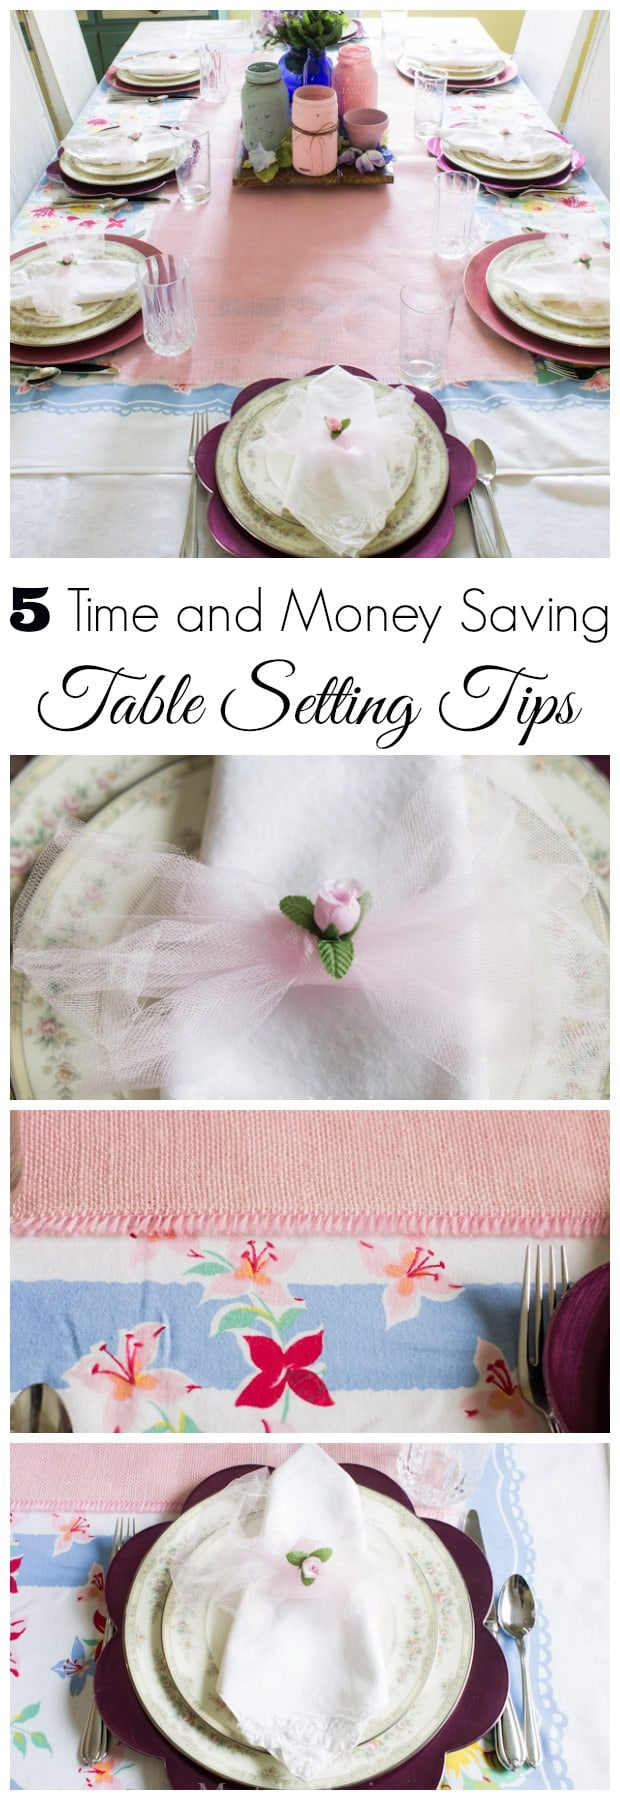 5 Time and Money Saving Table Setting Tips - Marty's Musings